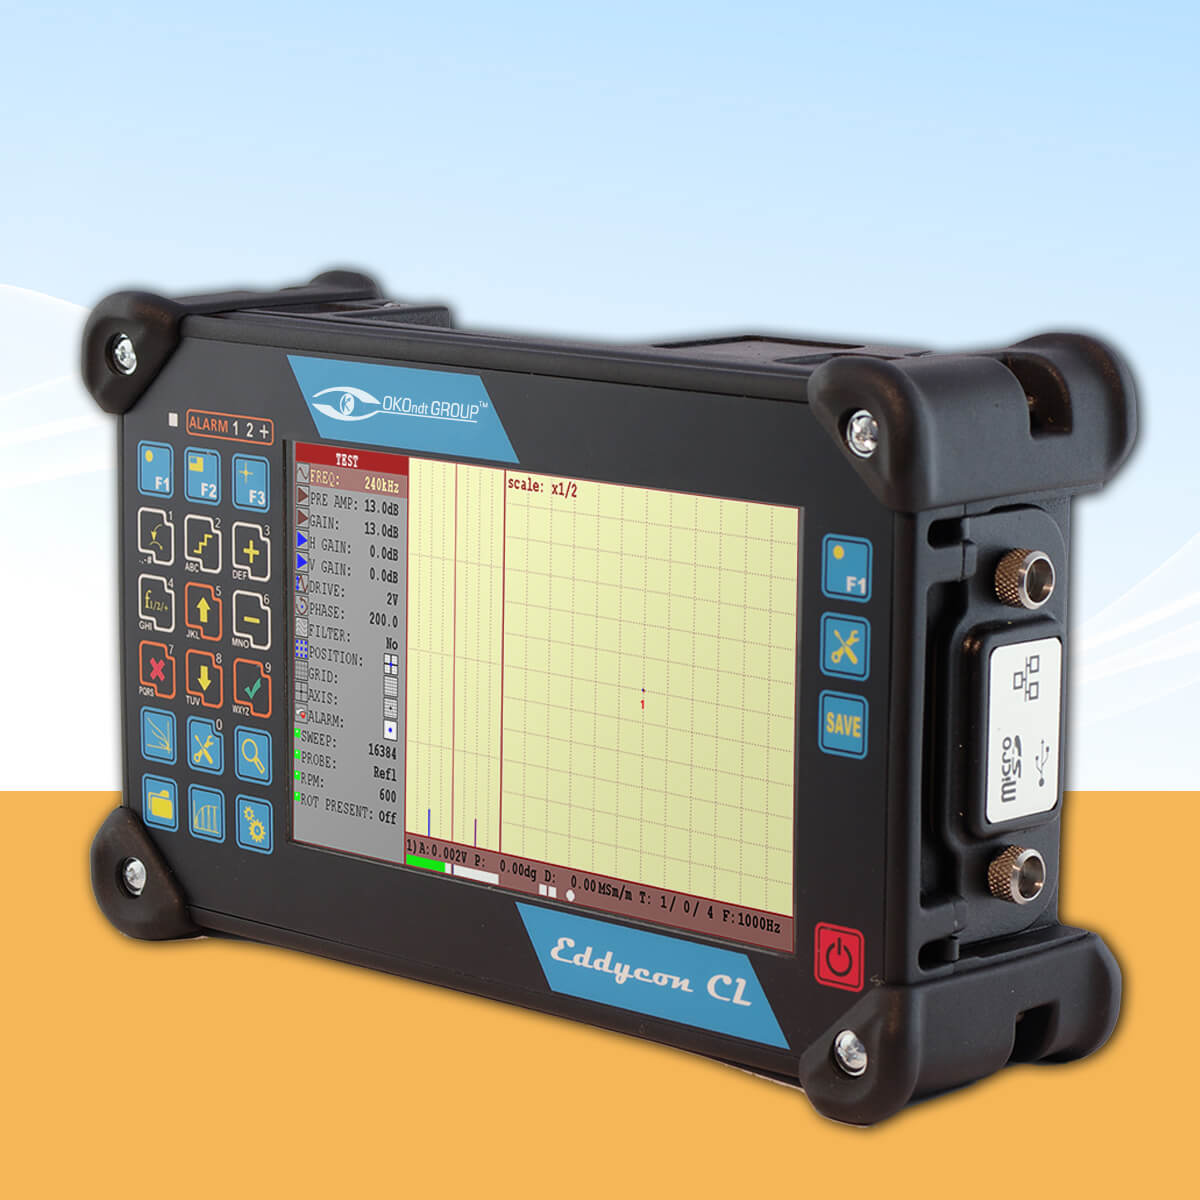 Eddy current flaw detector Eddycon CL